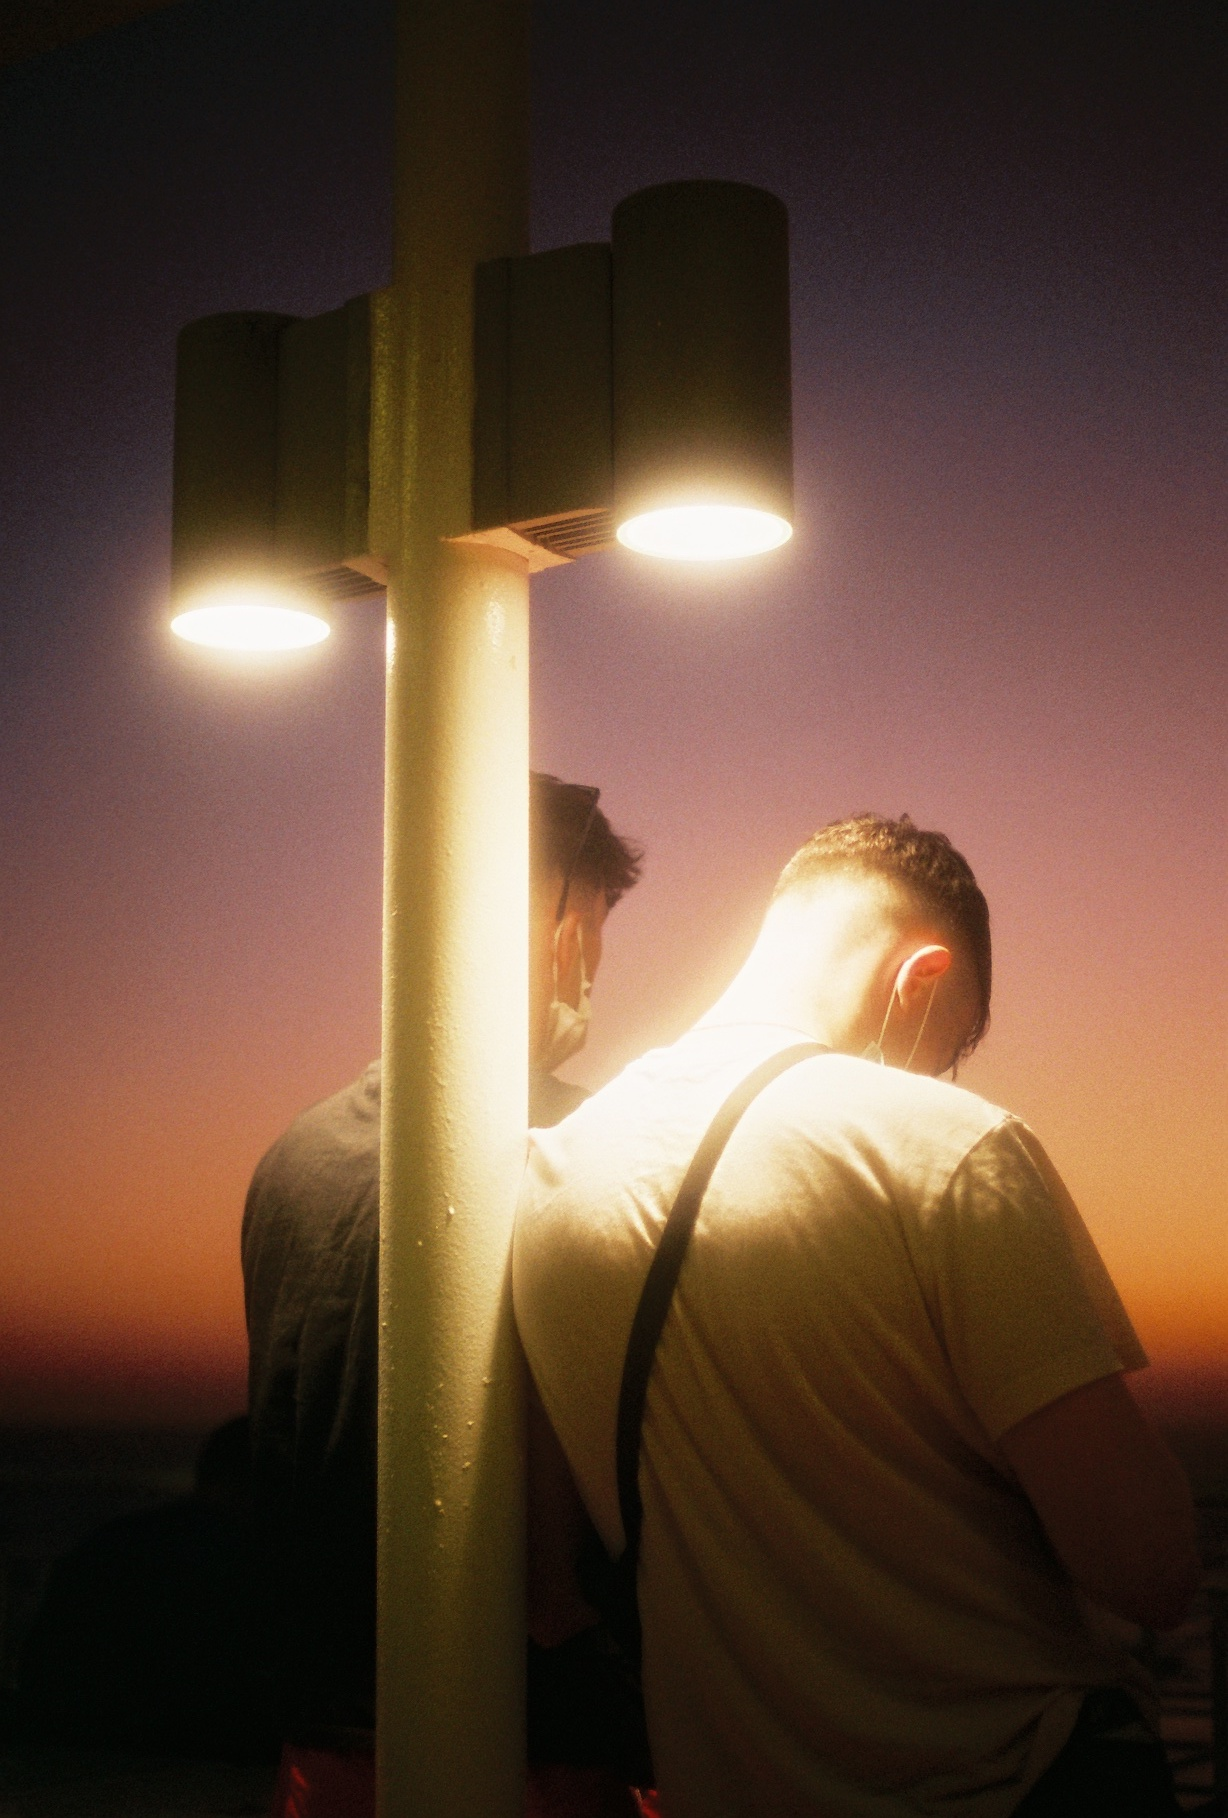 Two men watch the sunset standing against a street lamp